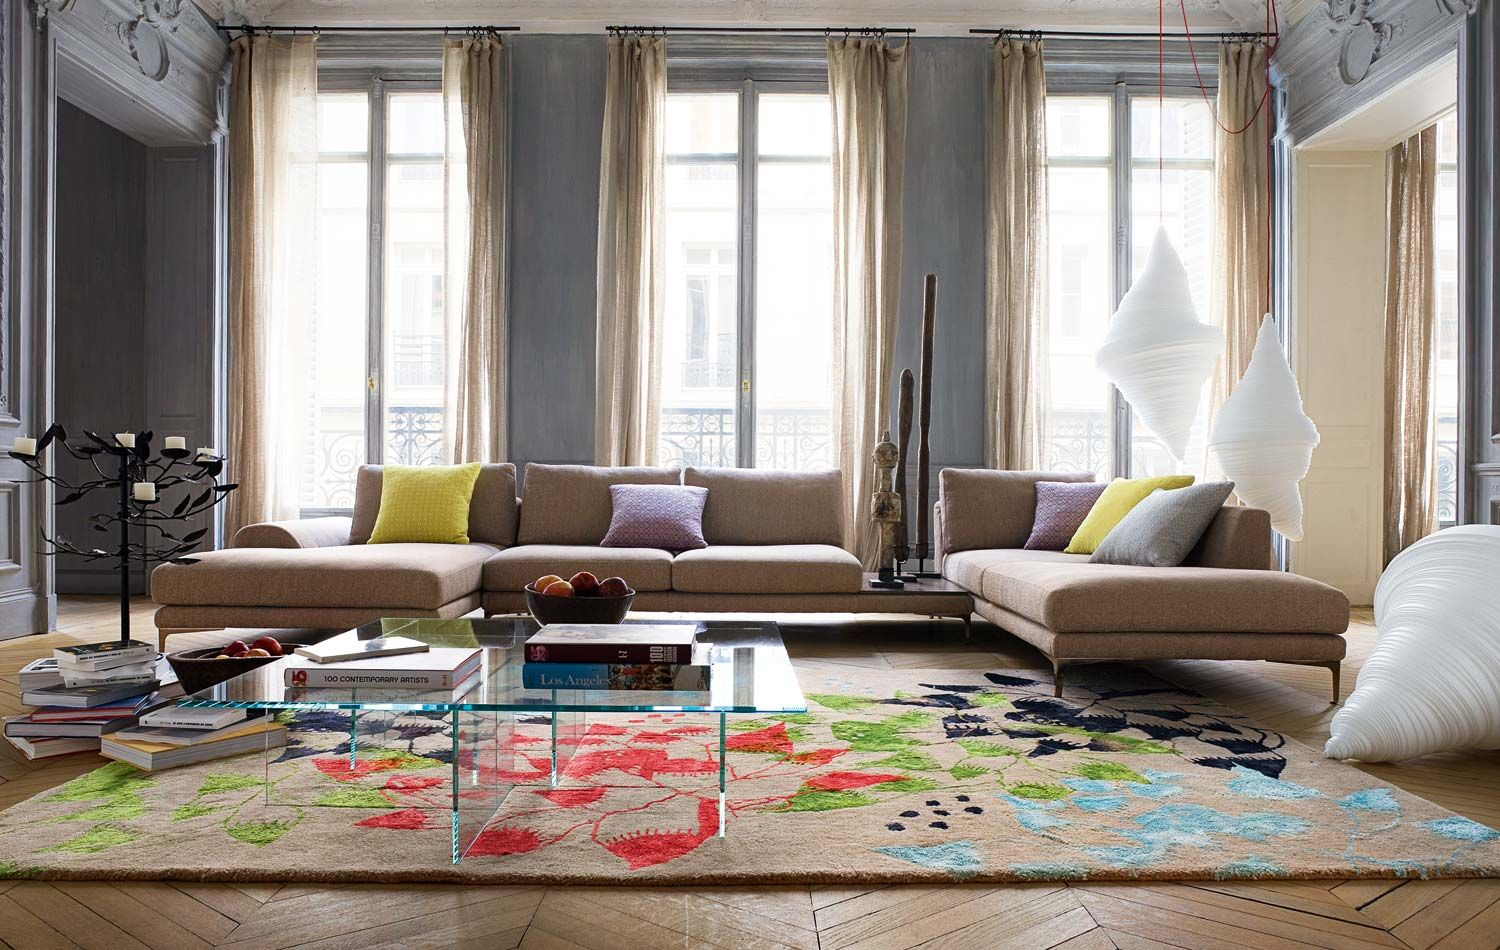 Living Room Living Room Inspirations 1000 images about linving inspirations on pinterest living room inspiration modern sofa and cool rooms